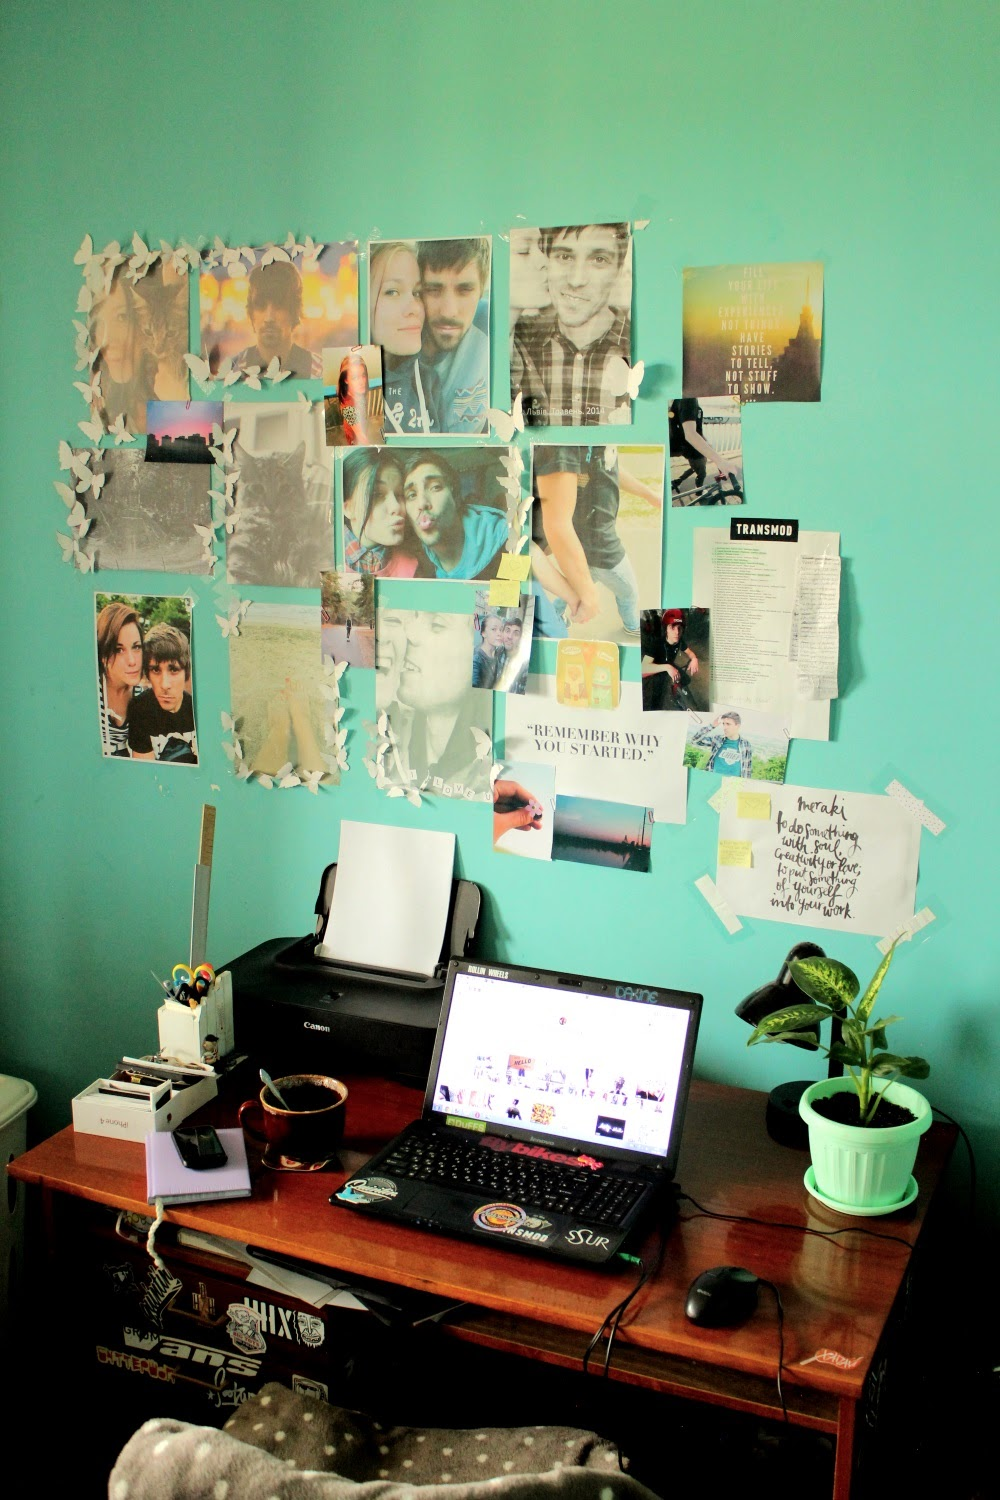 My personal work place and inspiration board